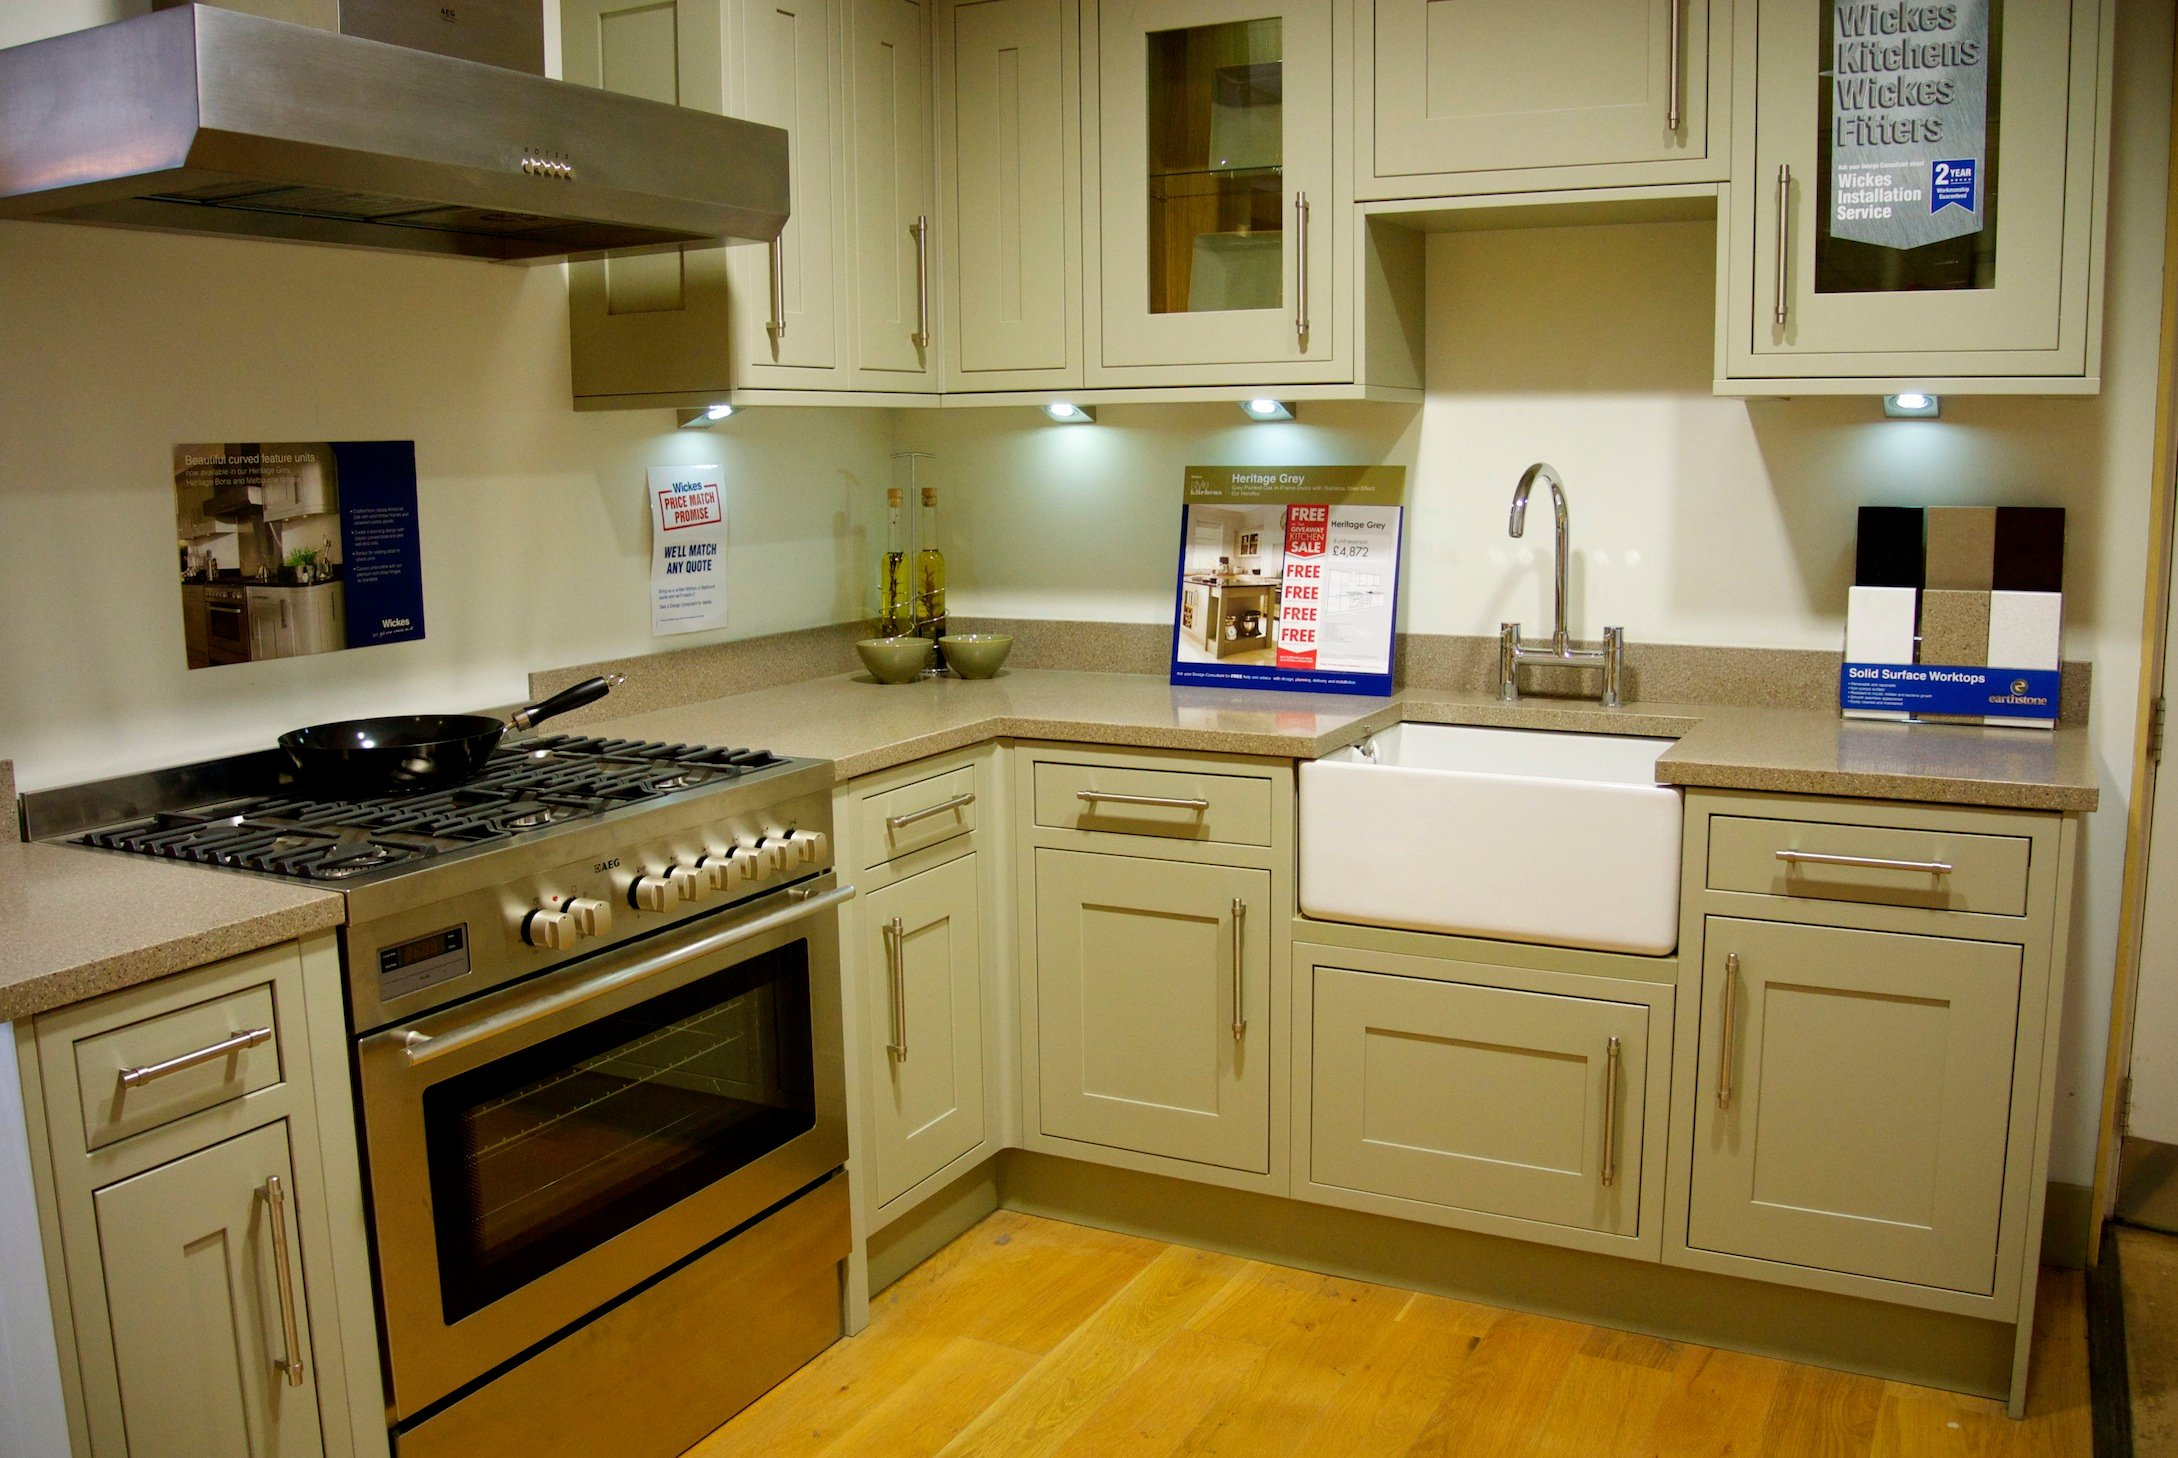 Wickes Kitchen Furniture Heritage Grey Kitchen Winda 7 Furniture